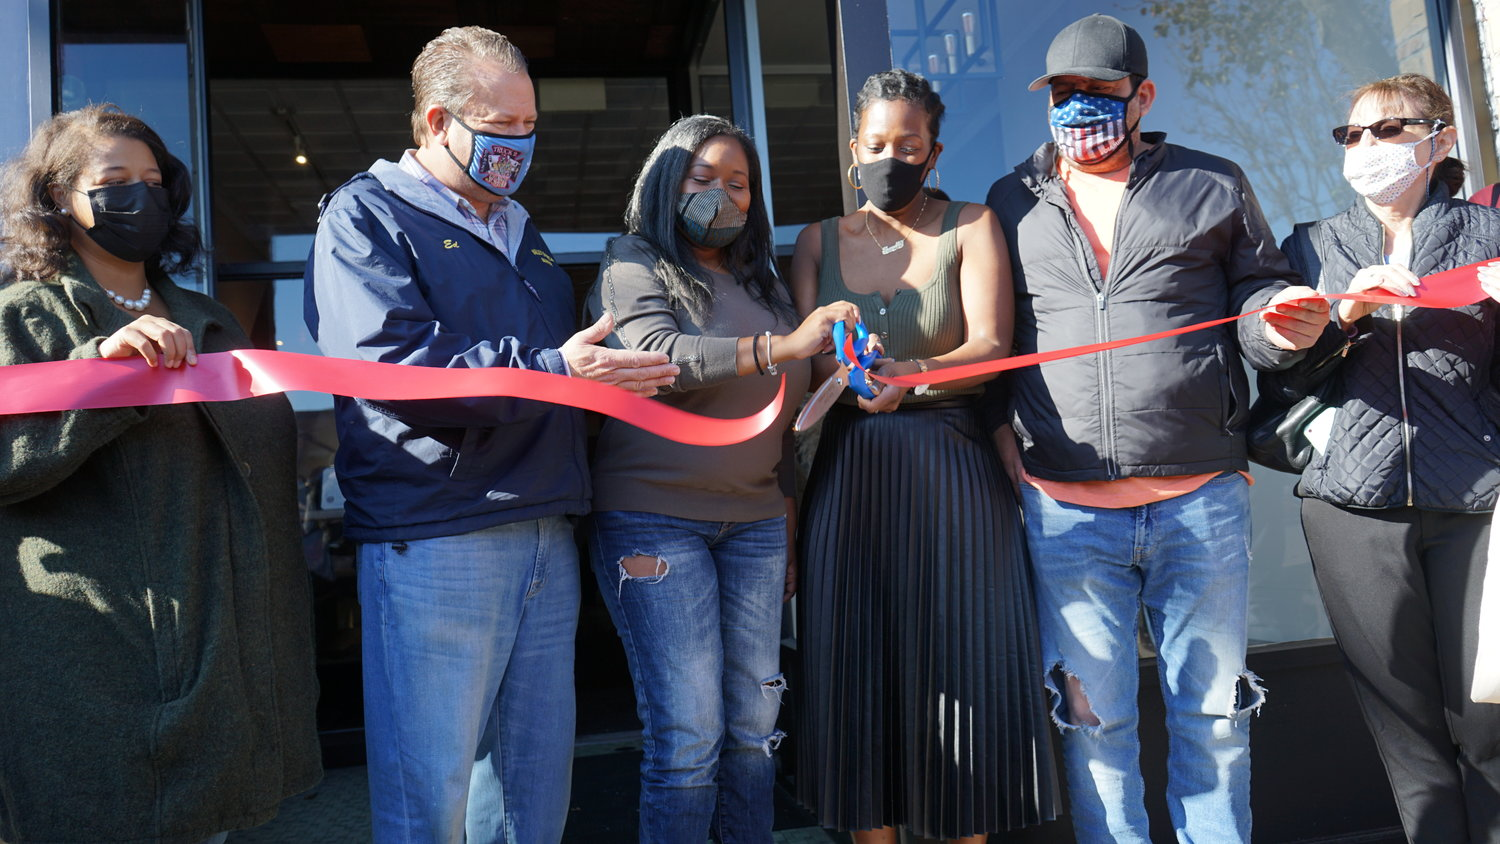 State, village and chamber of commerce representatives joined with Standard Pour co-owners Darlene Gomez, third from left, and Shanelle County to celebrate the ribbon cutting and grand opening of their new boutique coffee shop.